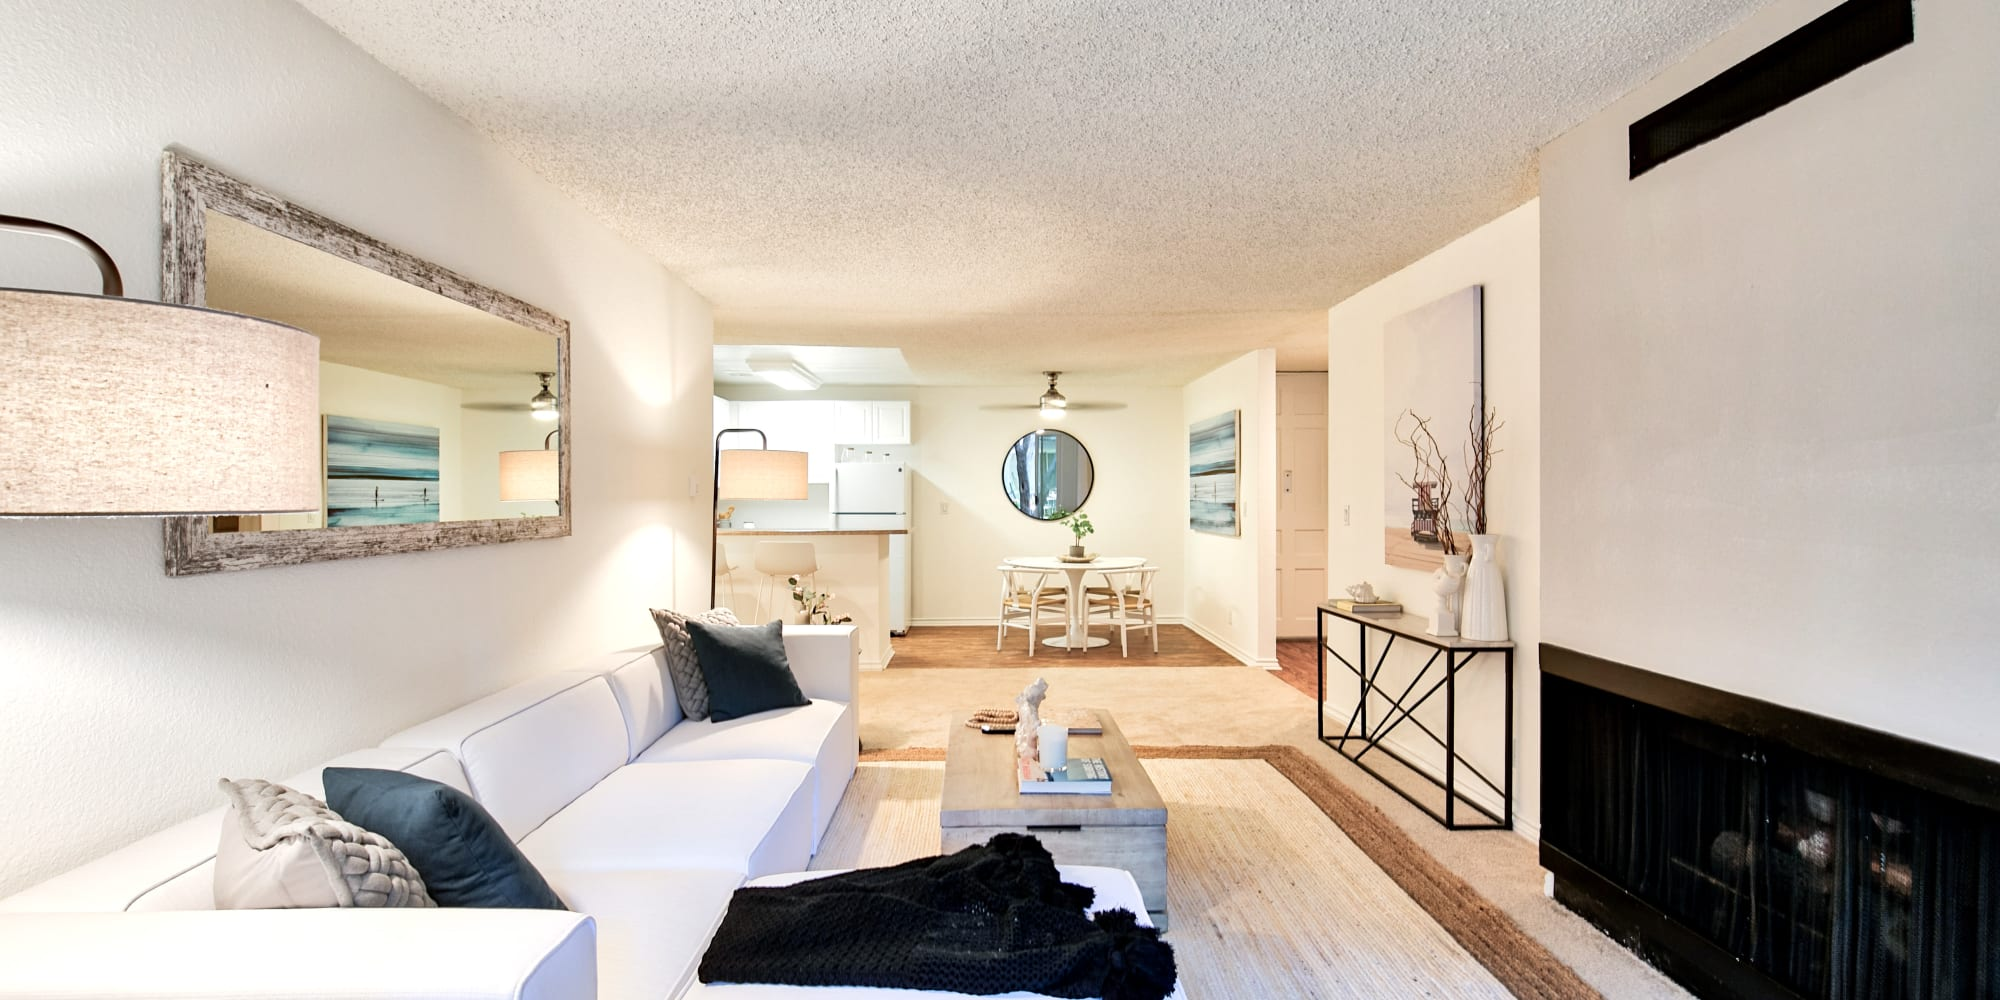 Spacious, well-furnished living room with wood-style flooring in a model home at The Meadows in Culver City, California